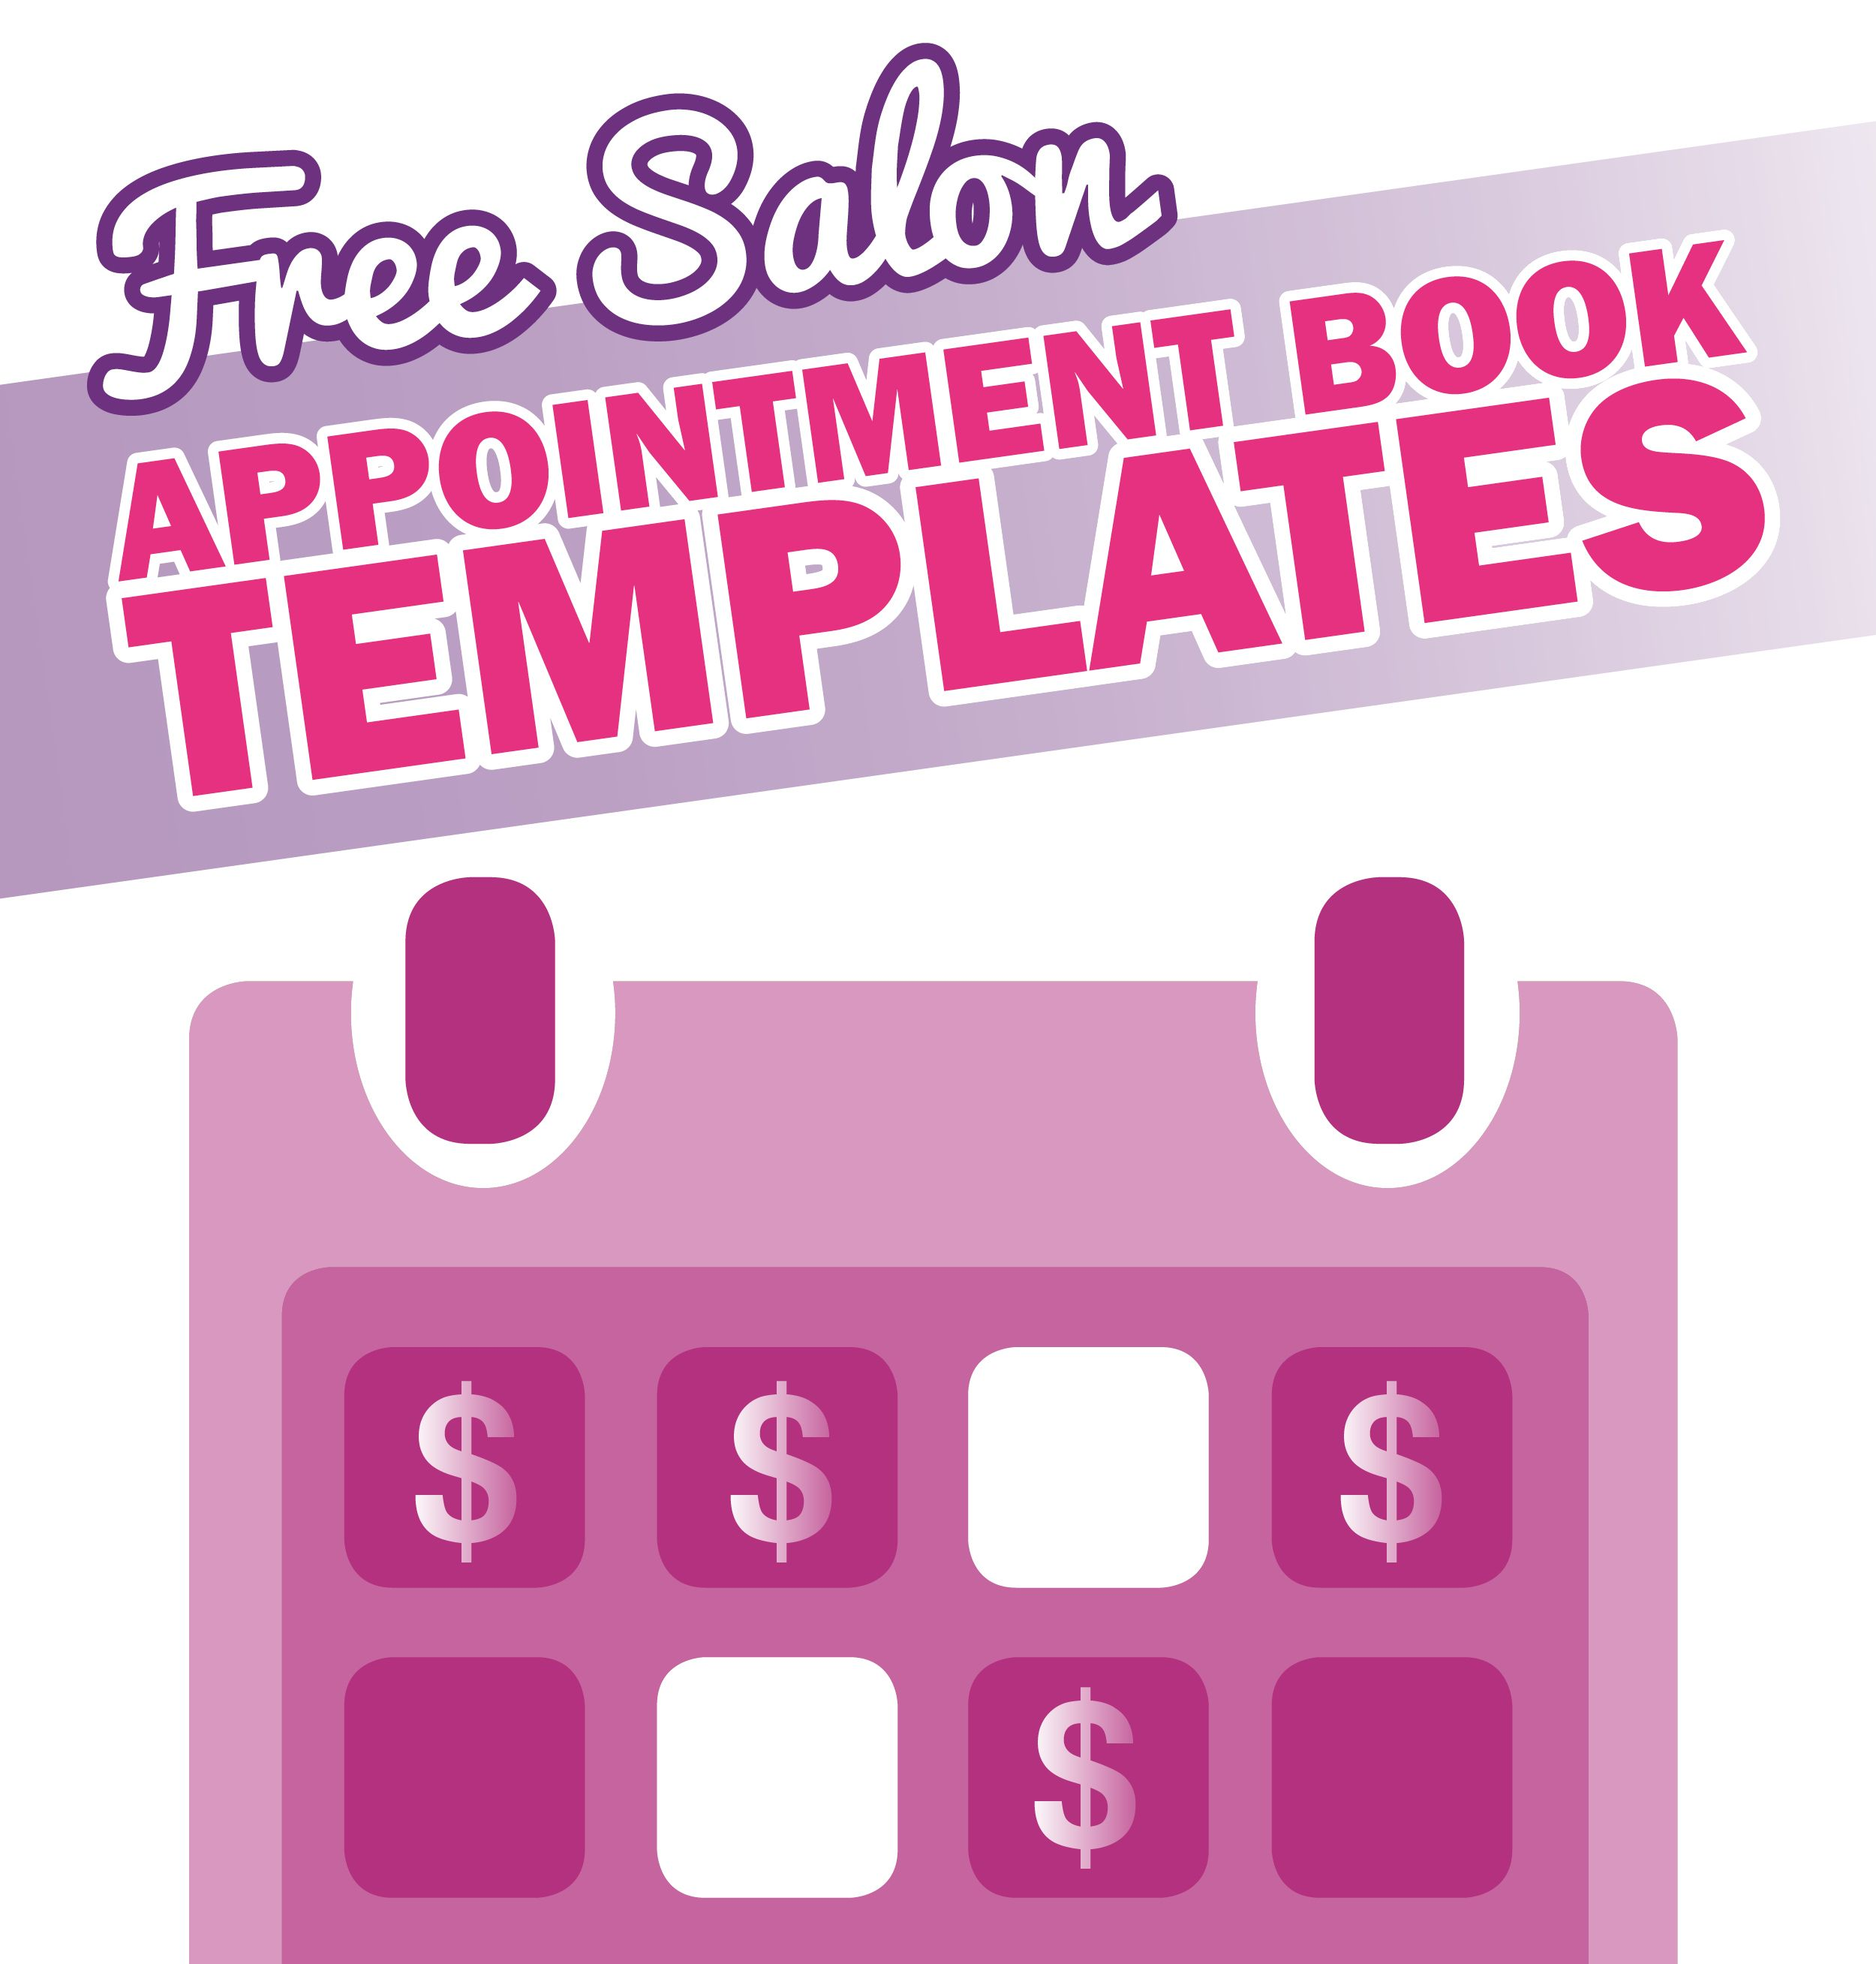 Free Salon Appointment Book Template - http://worldwidesalonmarketing.com/ salon-